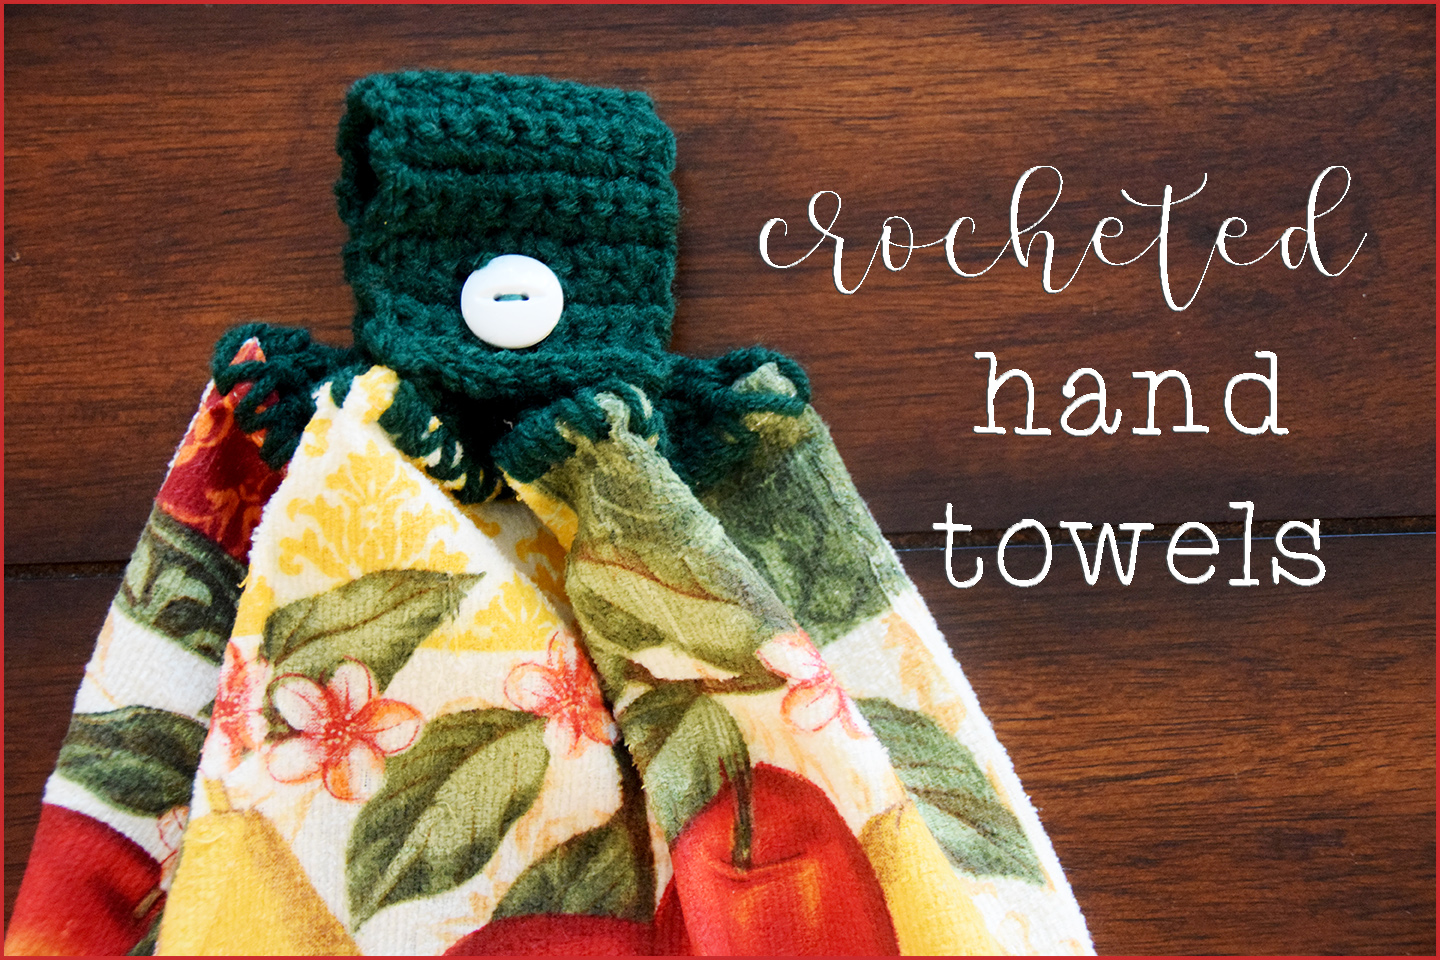 My Cup Overflows: Crocheted Hand Towels